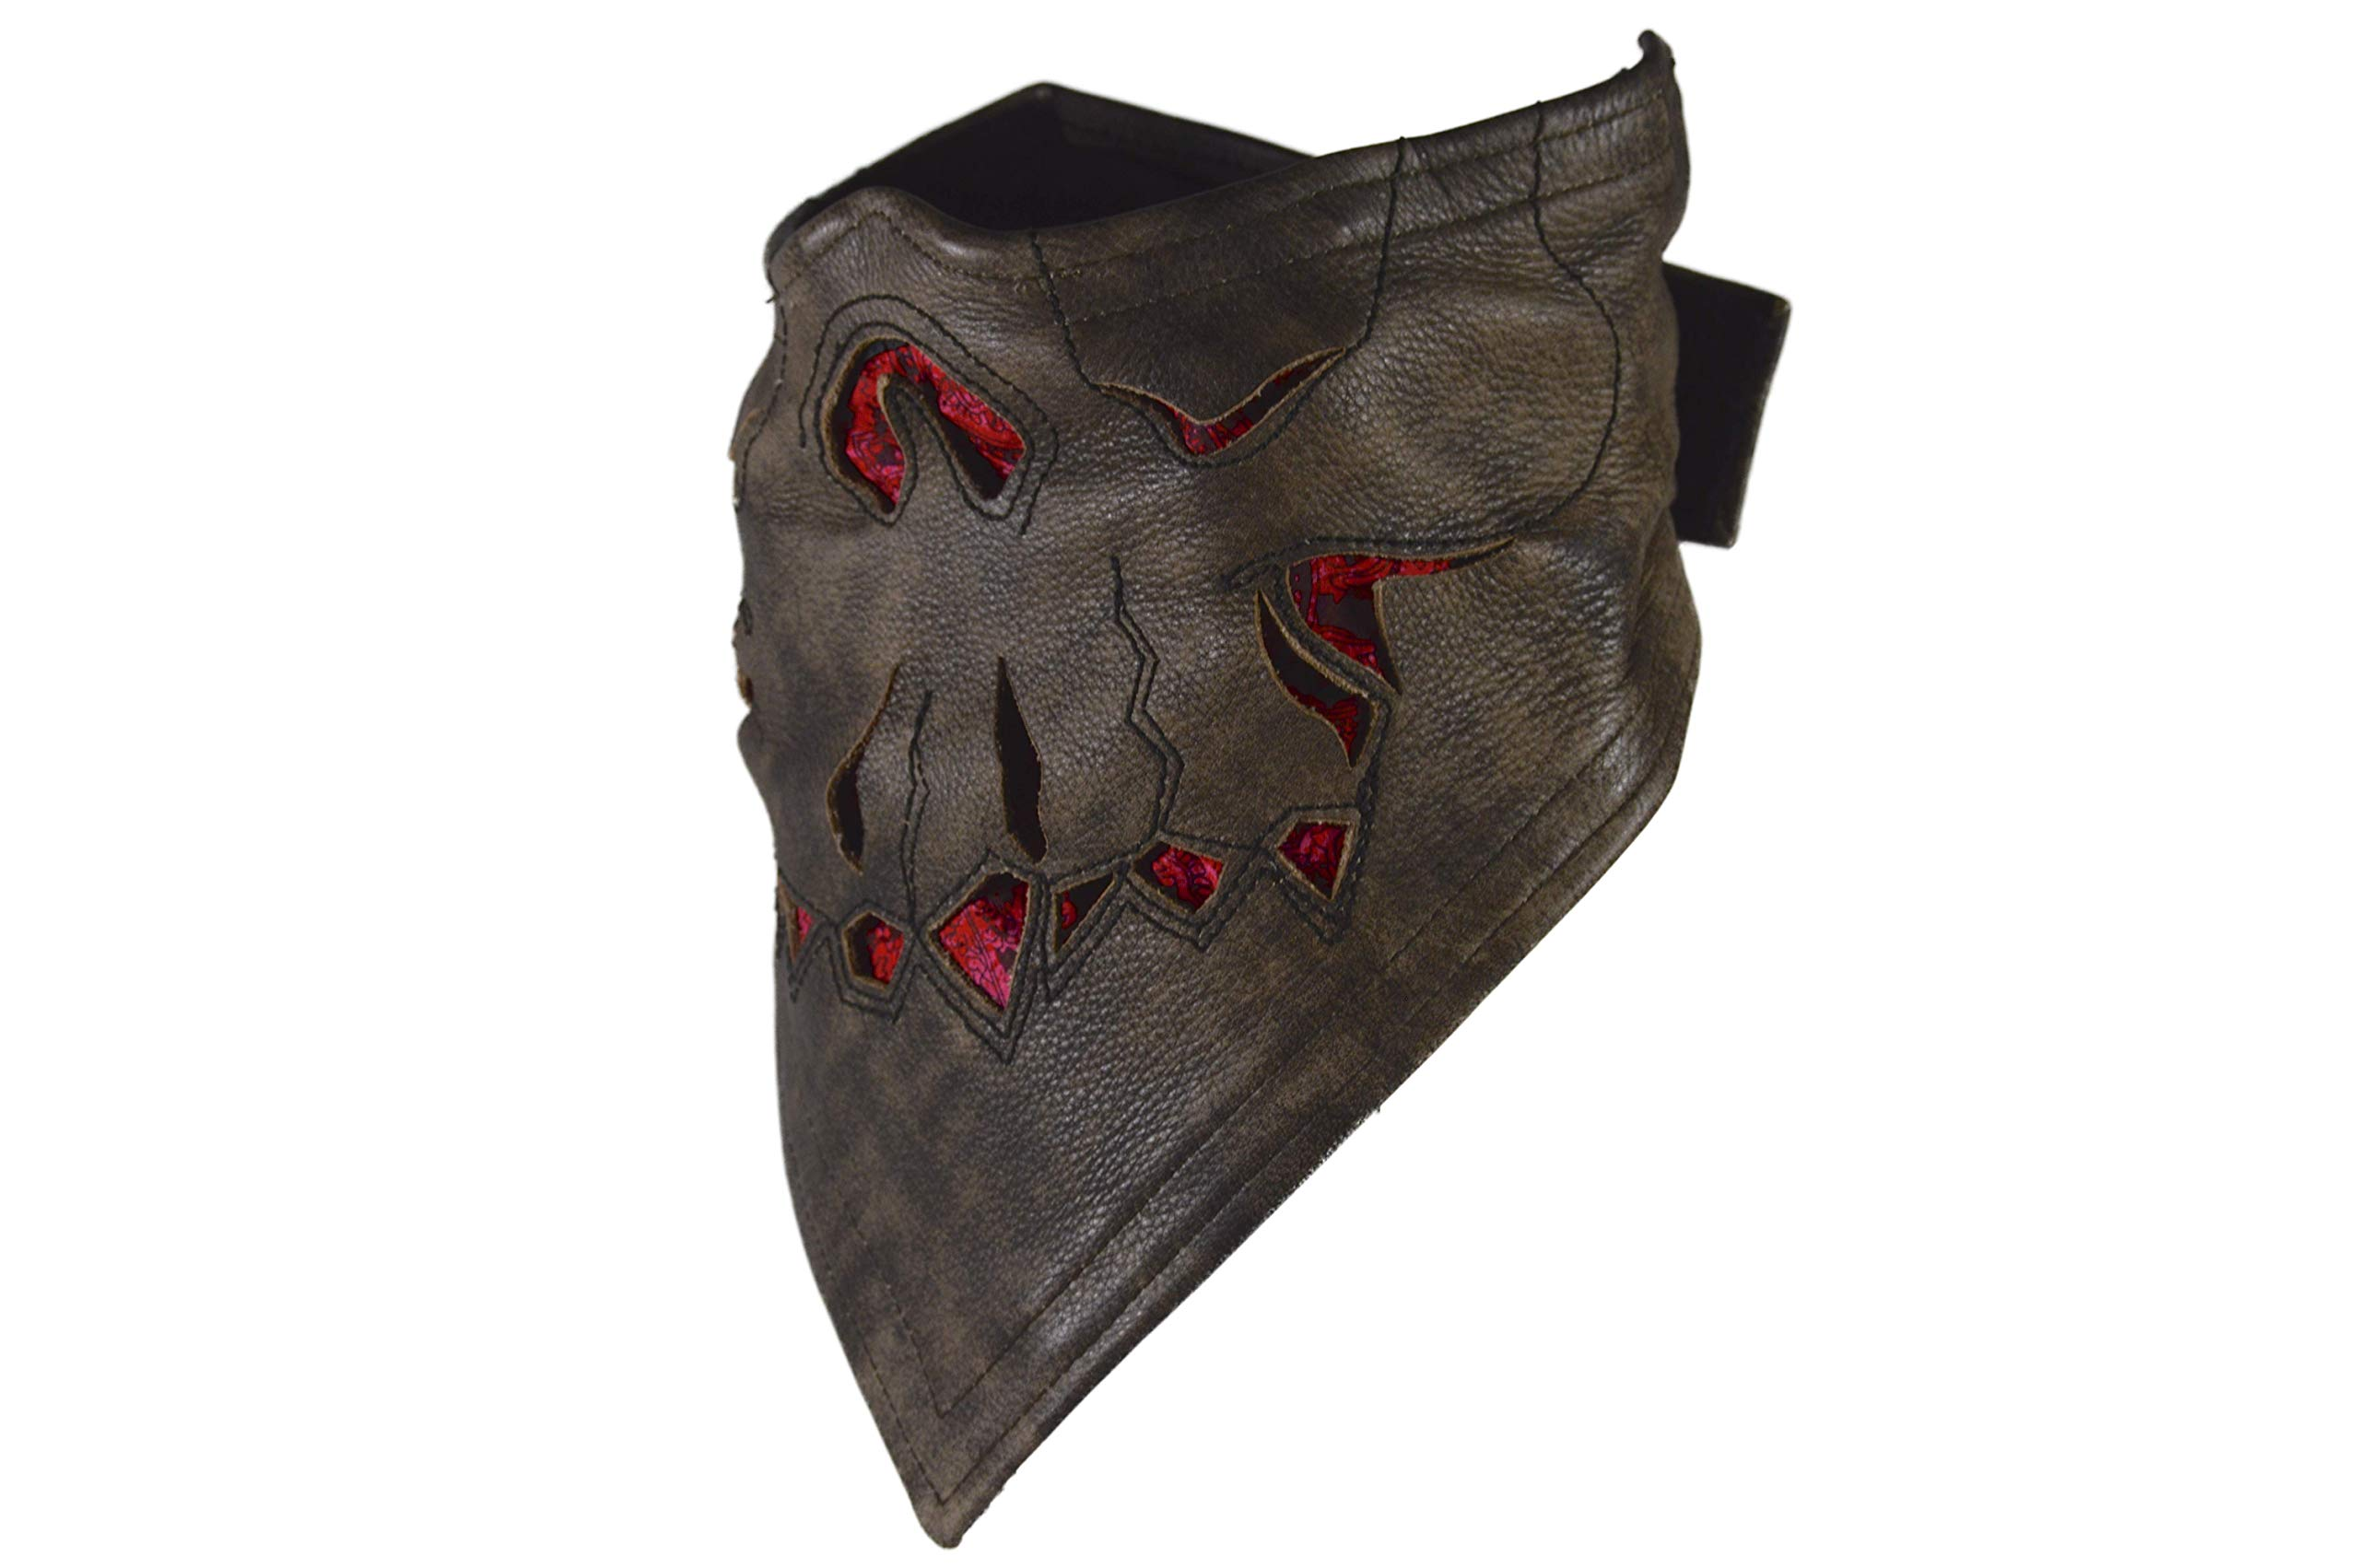 Leather Face Motorcycle Mask Leather Half Face Mask Skull Mask (Red) by Leather Face